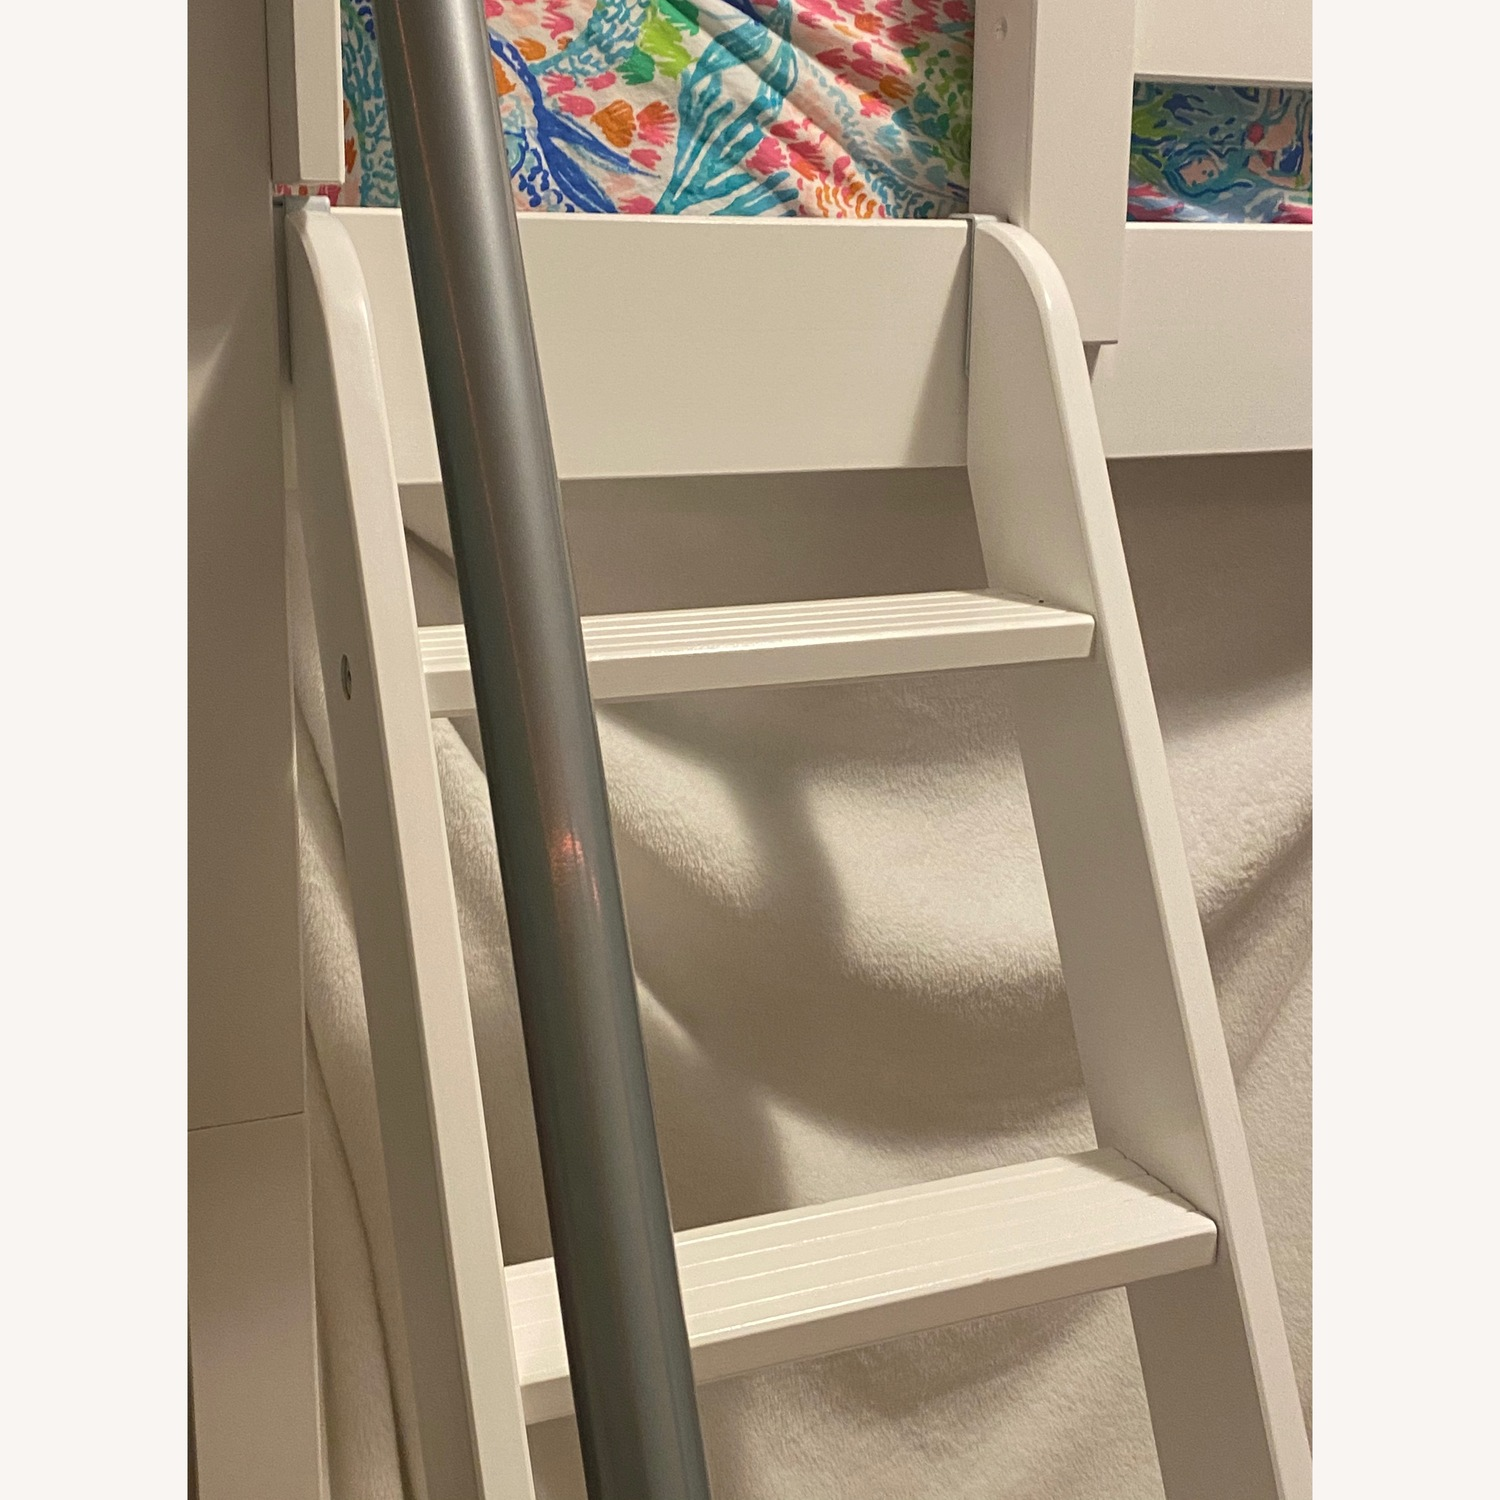 New White Loft Bed - Twin - image-2